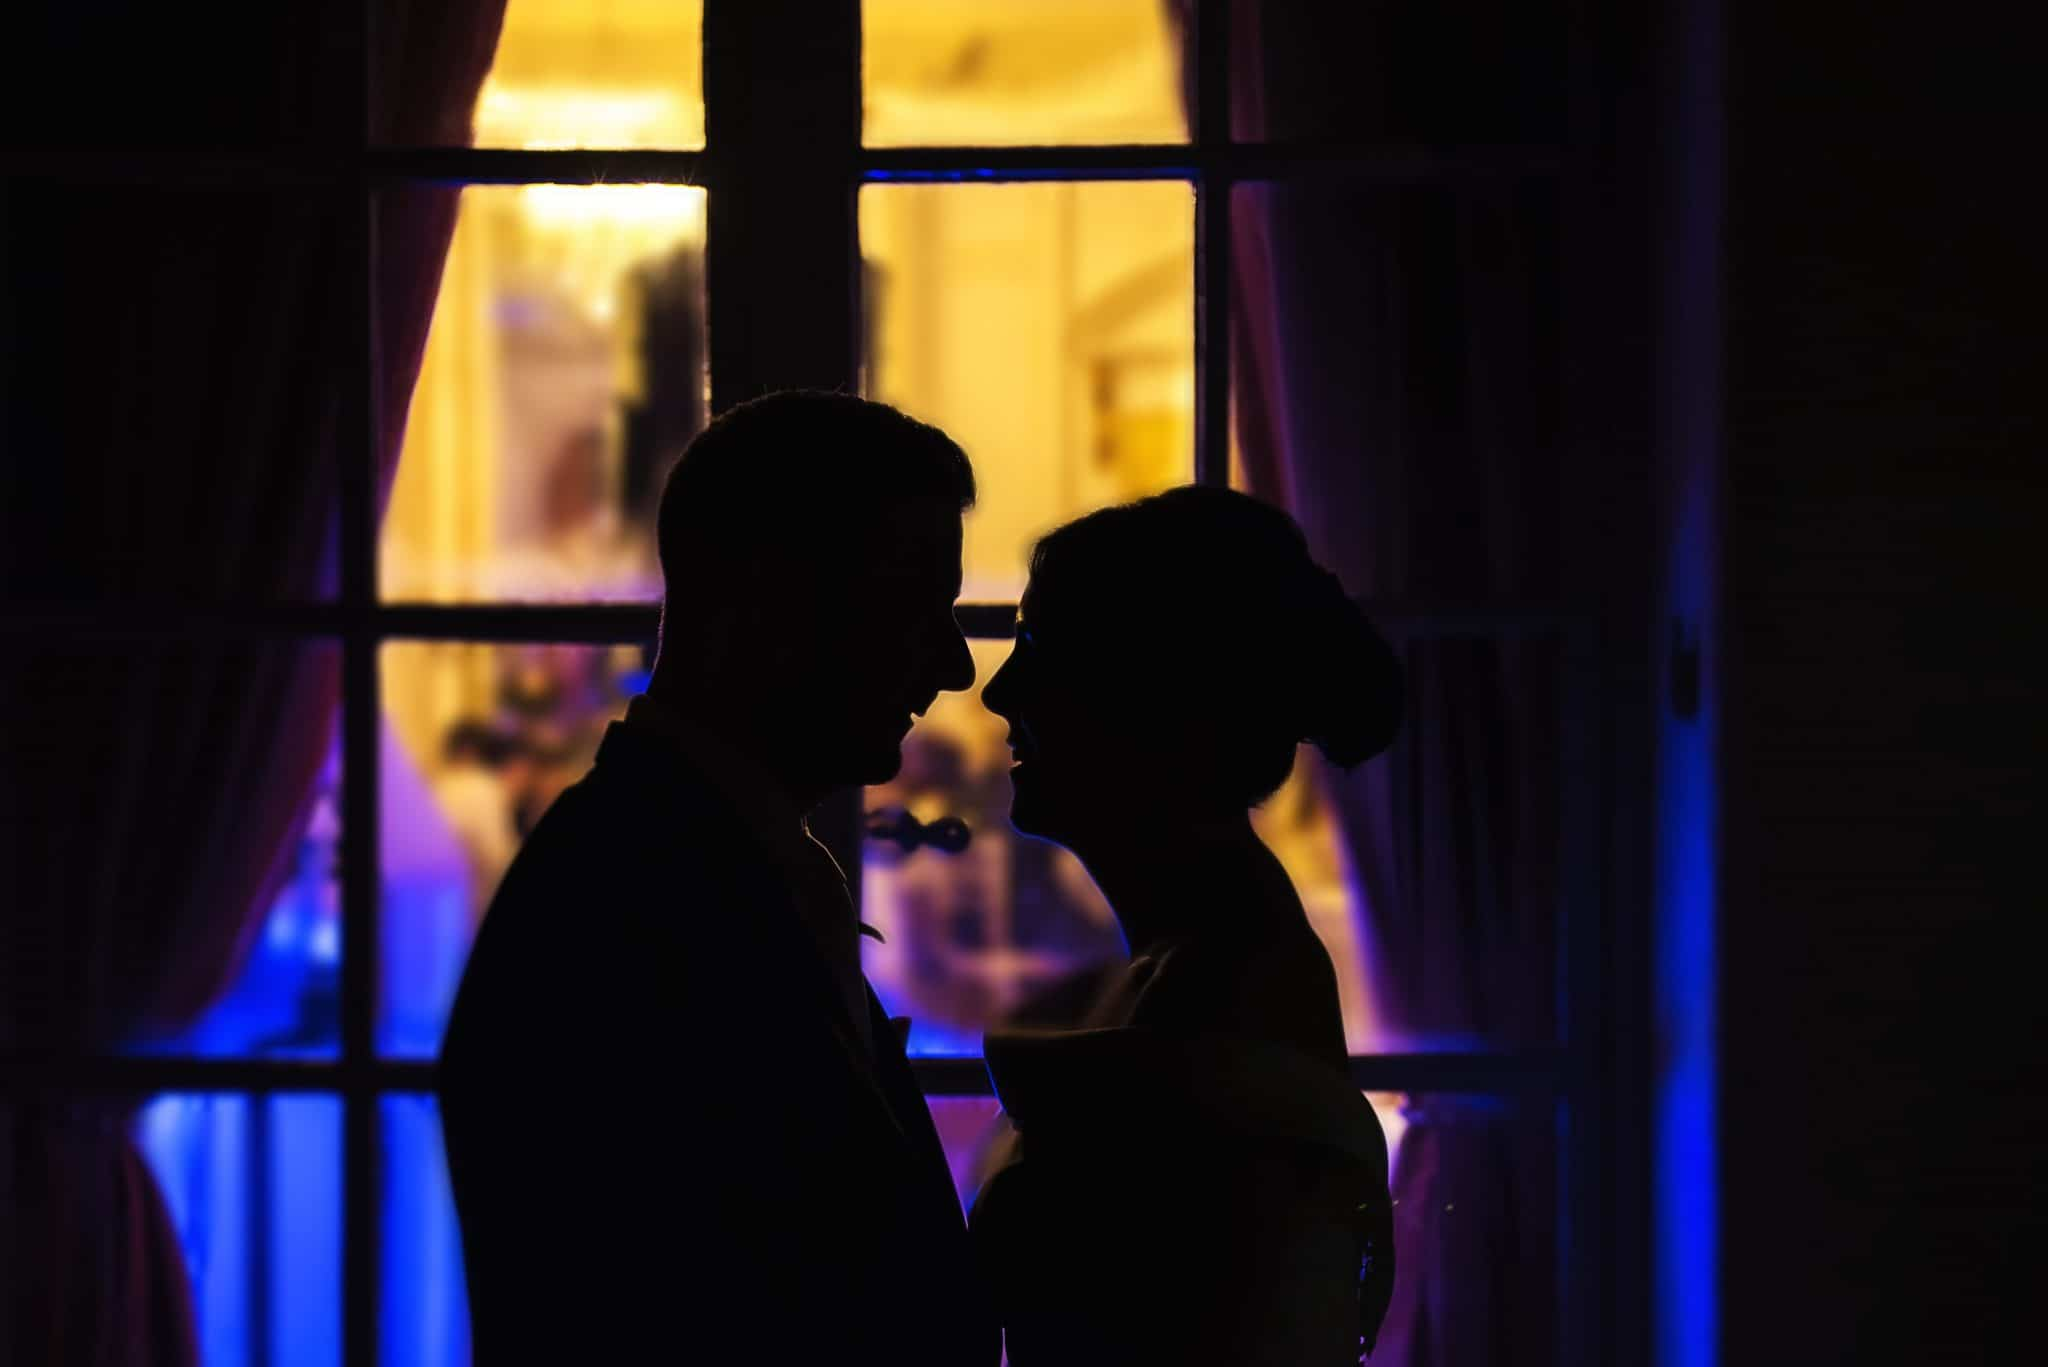 wedding photographers cardiff - Couple silhouetted against window